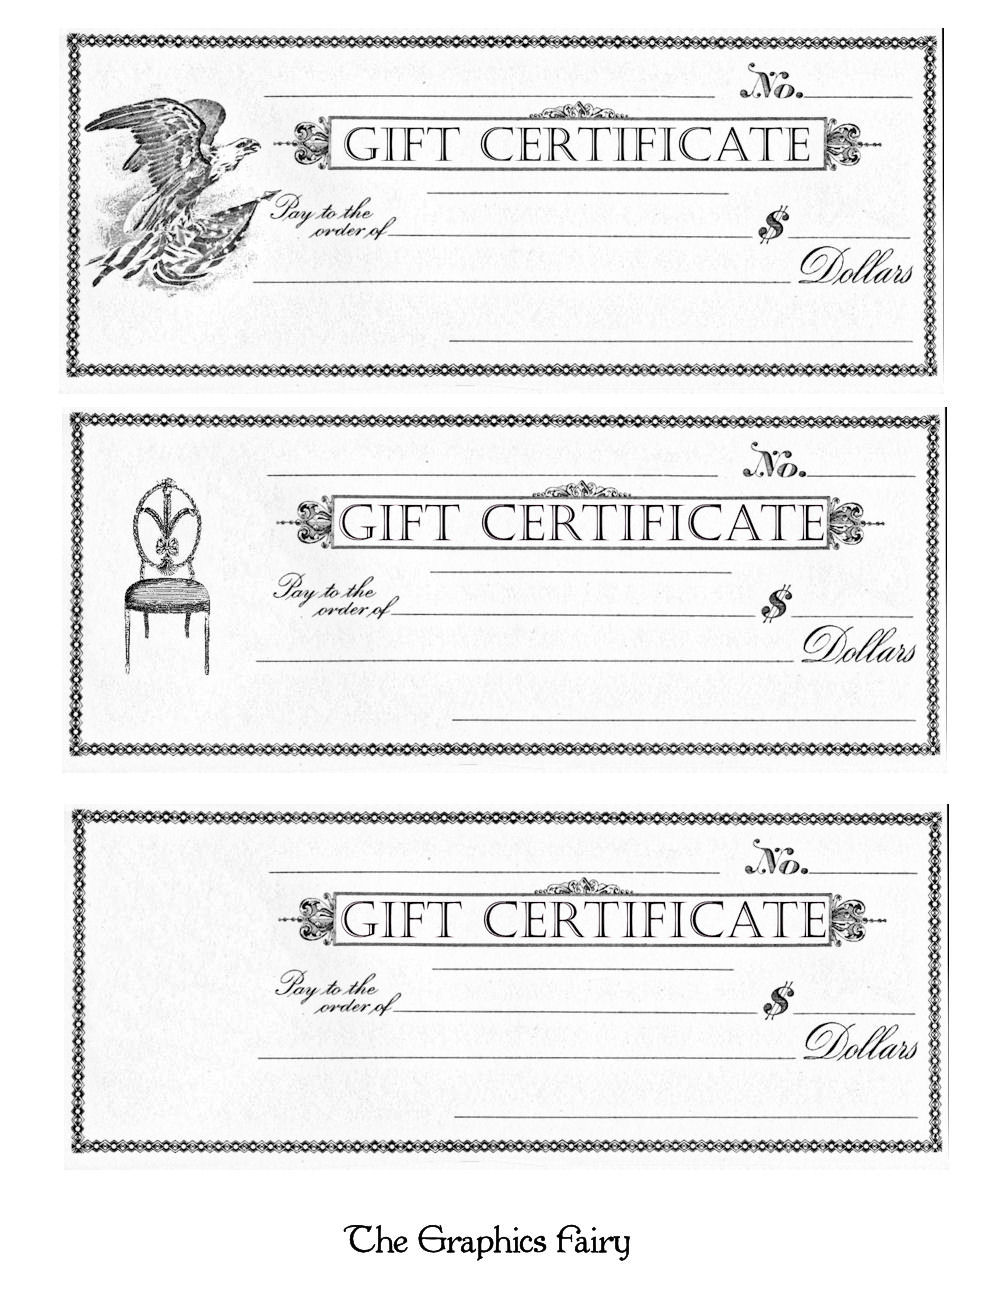 Free printable gift certificates the graphics fairy xxxooo negle Images